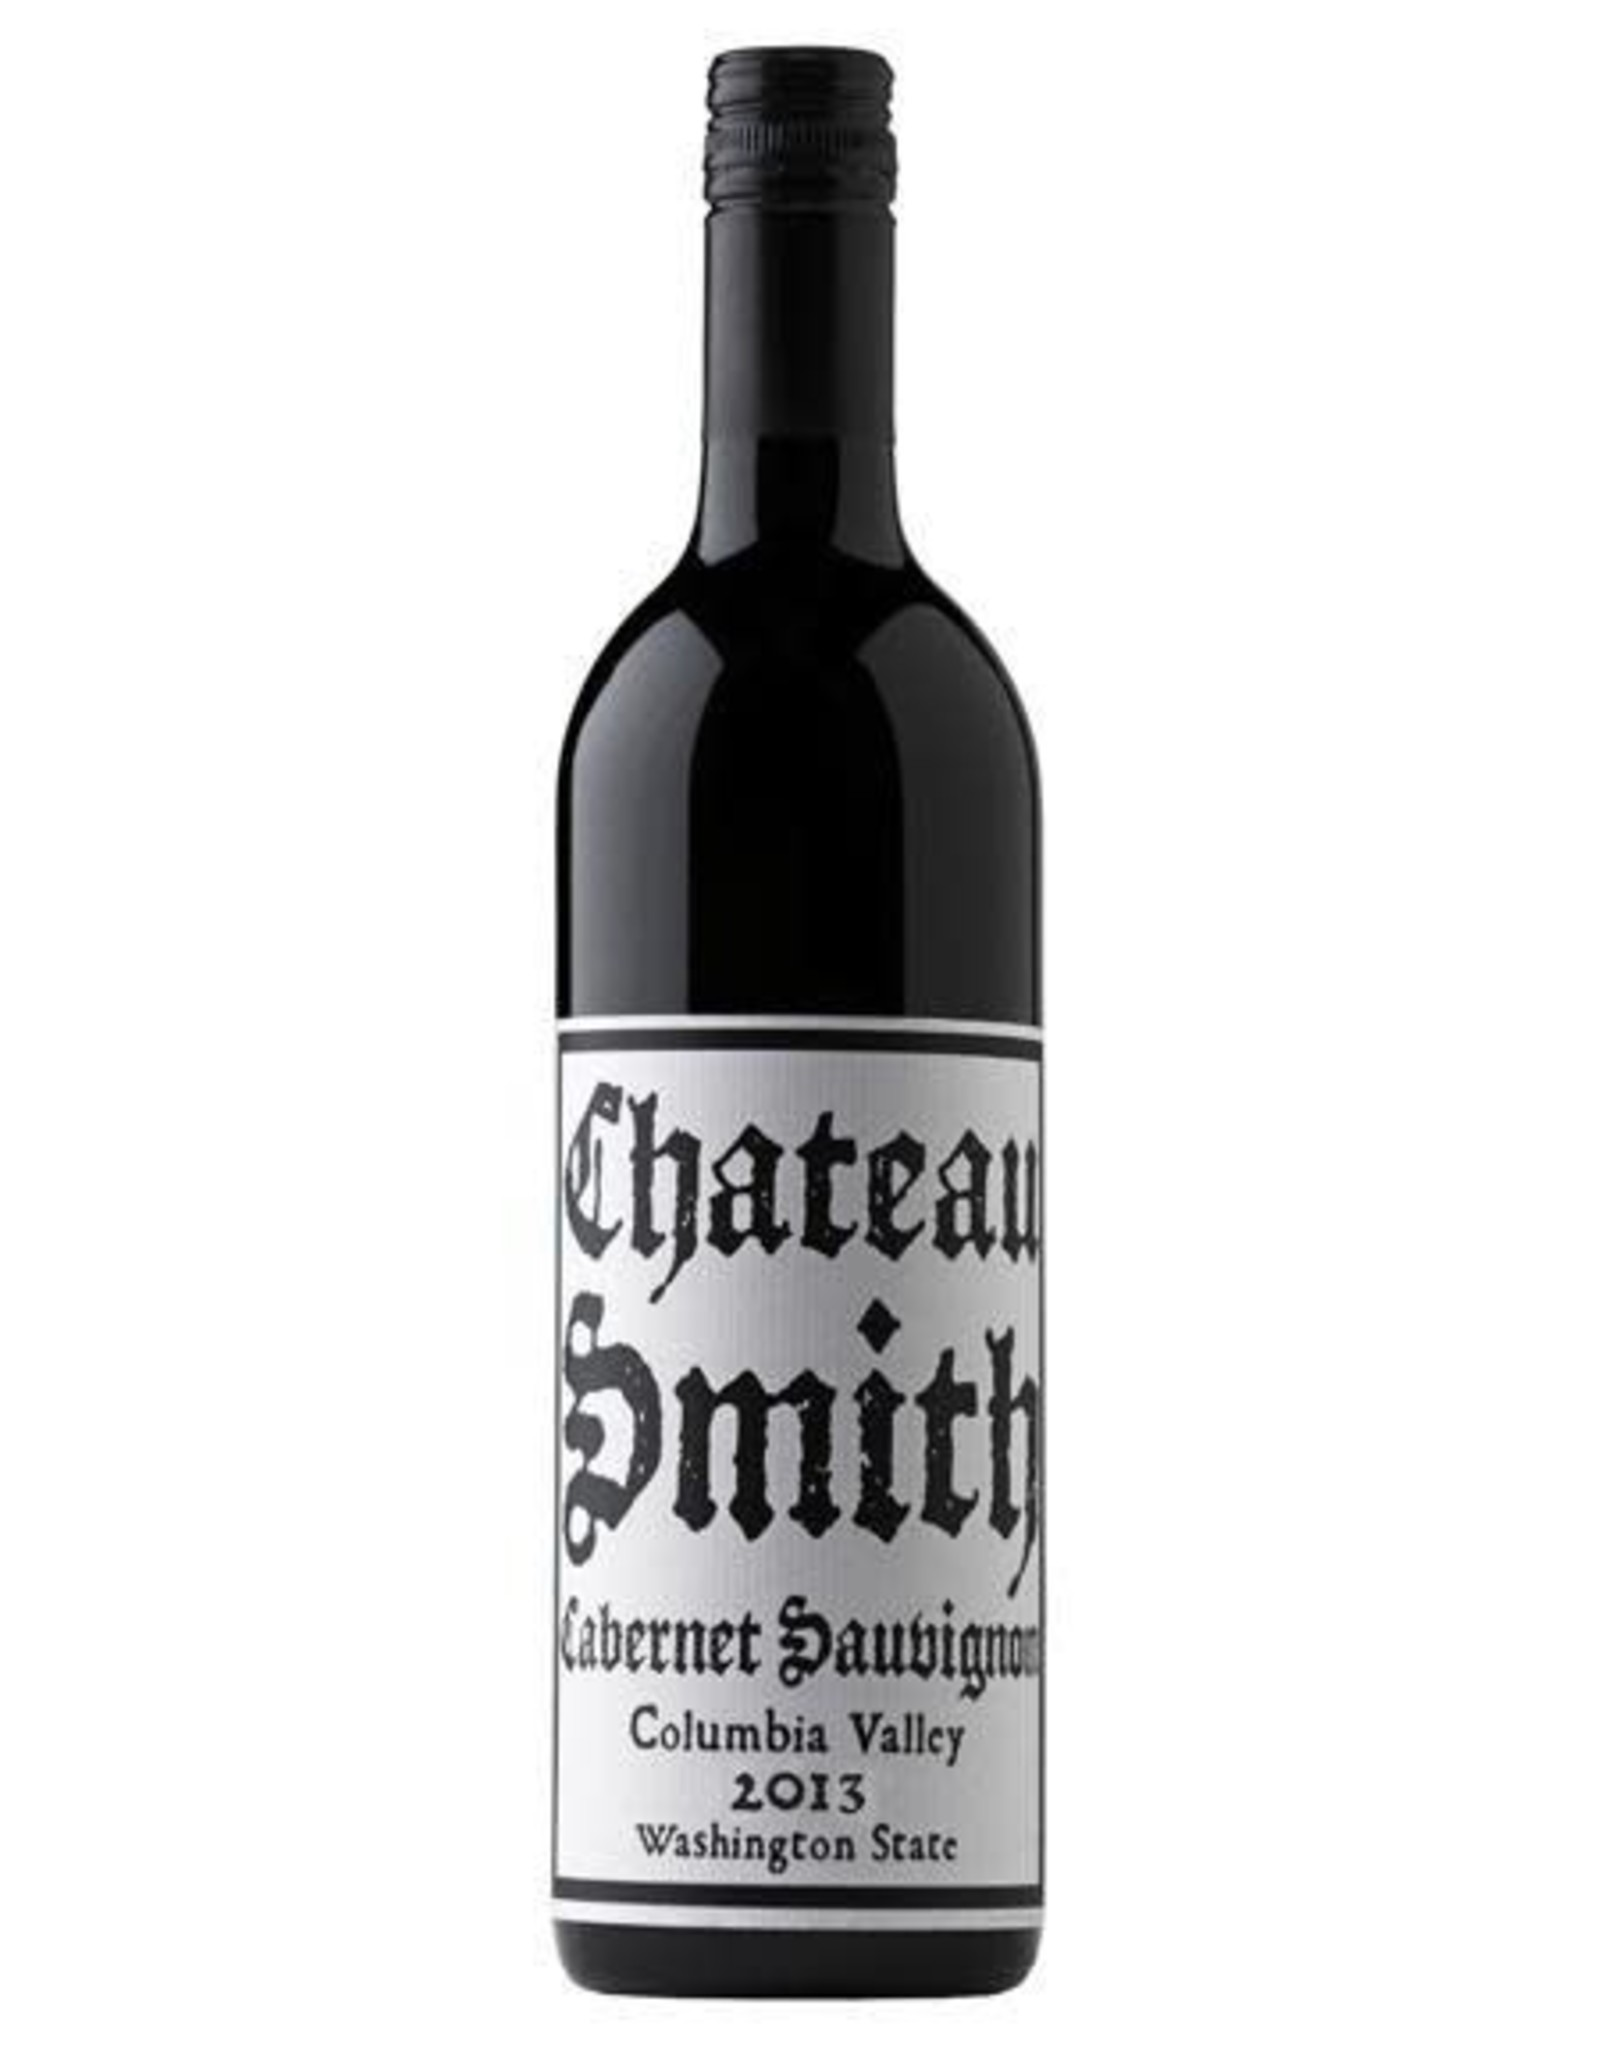 CHATEAU SMITH CABERNET SAUVIGNON 2014